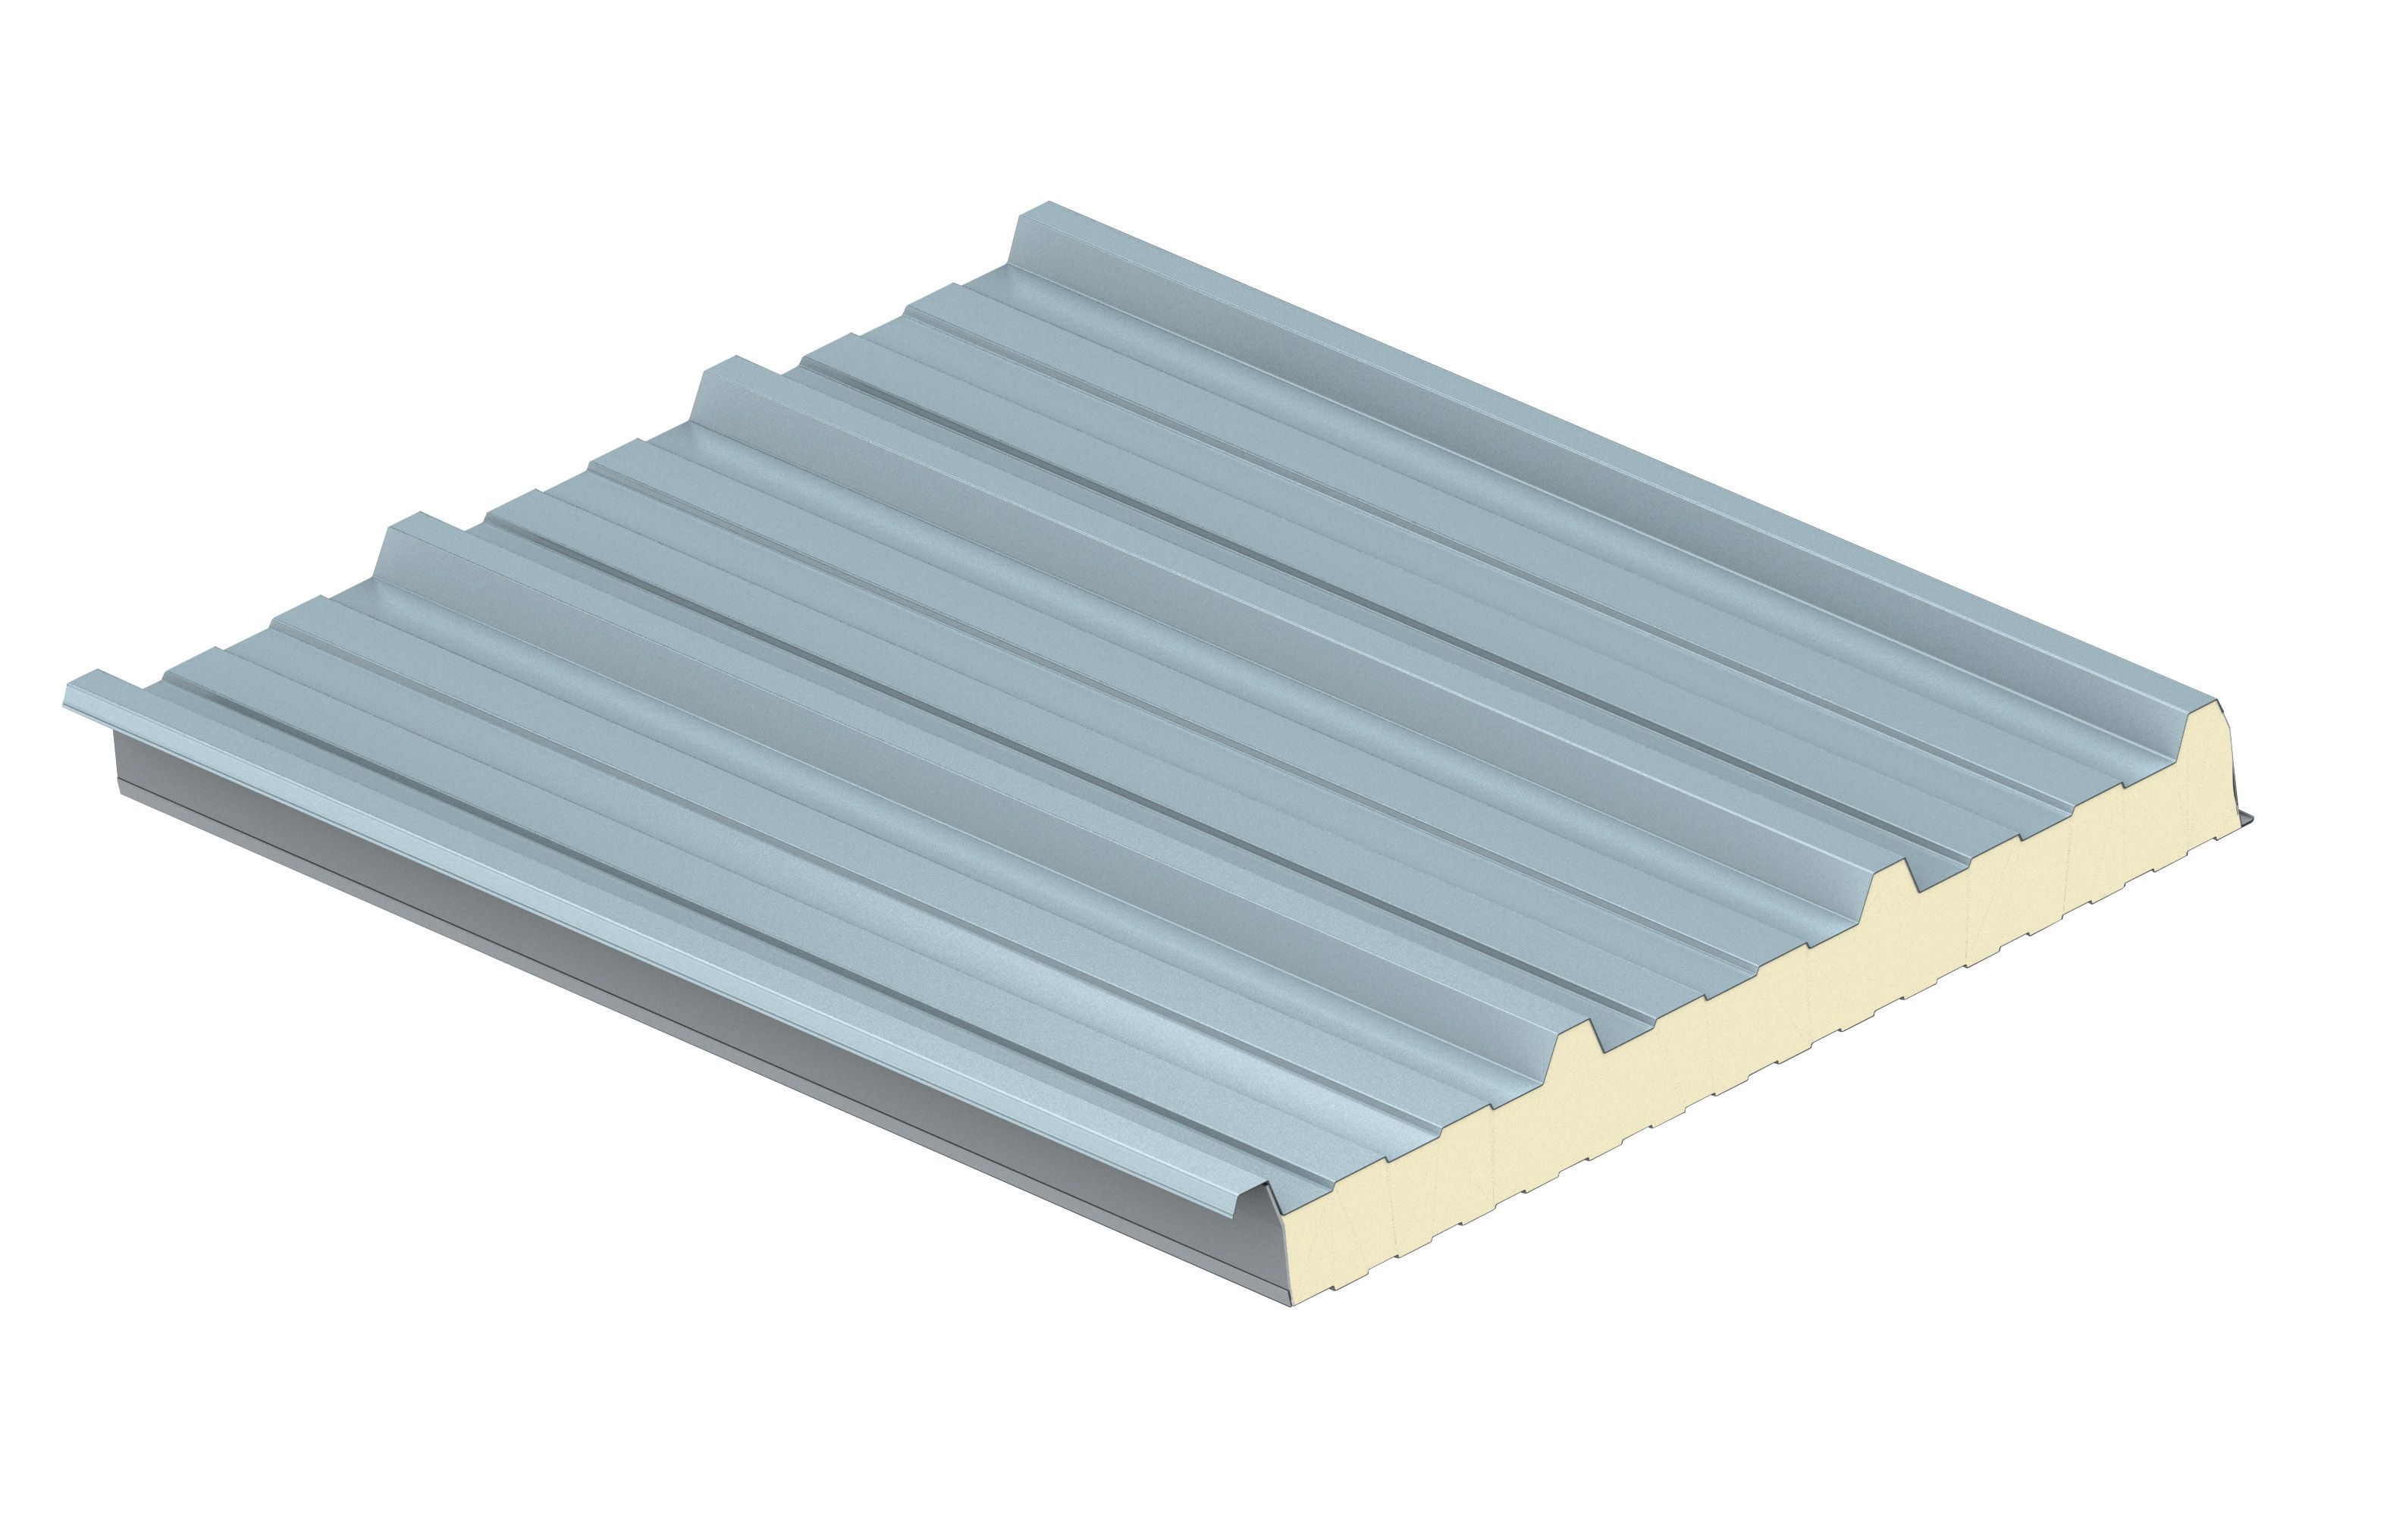 Rw Insulated Panel Roof System By Kingspan Group Plc